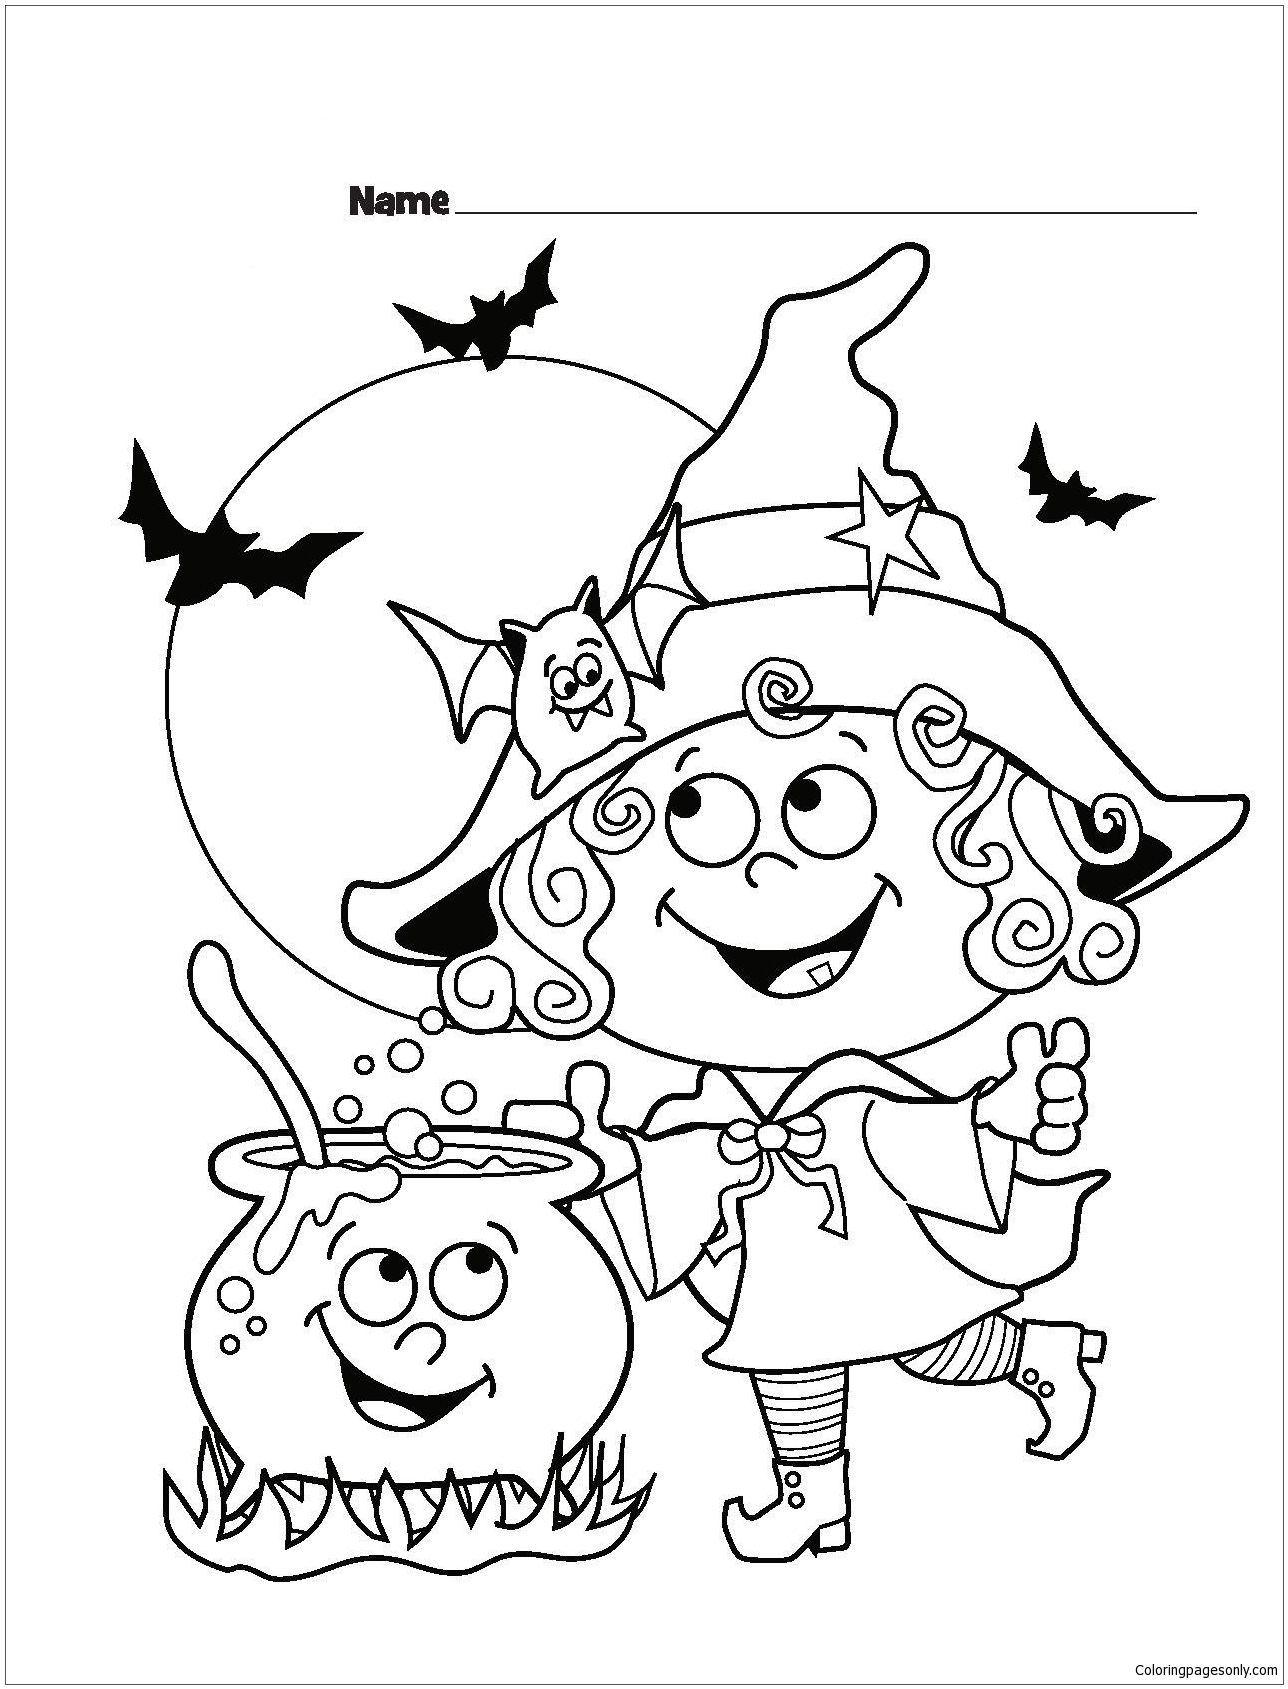 Cute Halloween Coloring Page Http Coloringpagesonly Com Pages Cute Hallowee Halloween Coloring Sheets Free Halloween Coloring Pages Halloween Coloring Pages